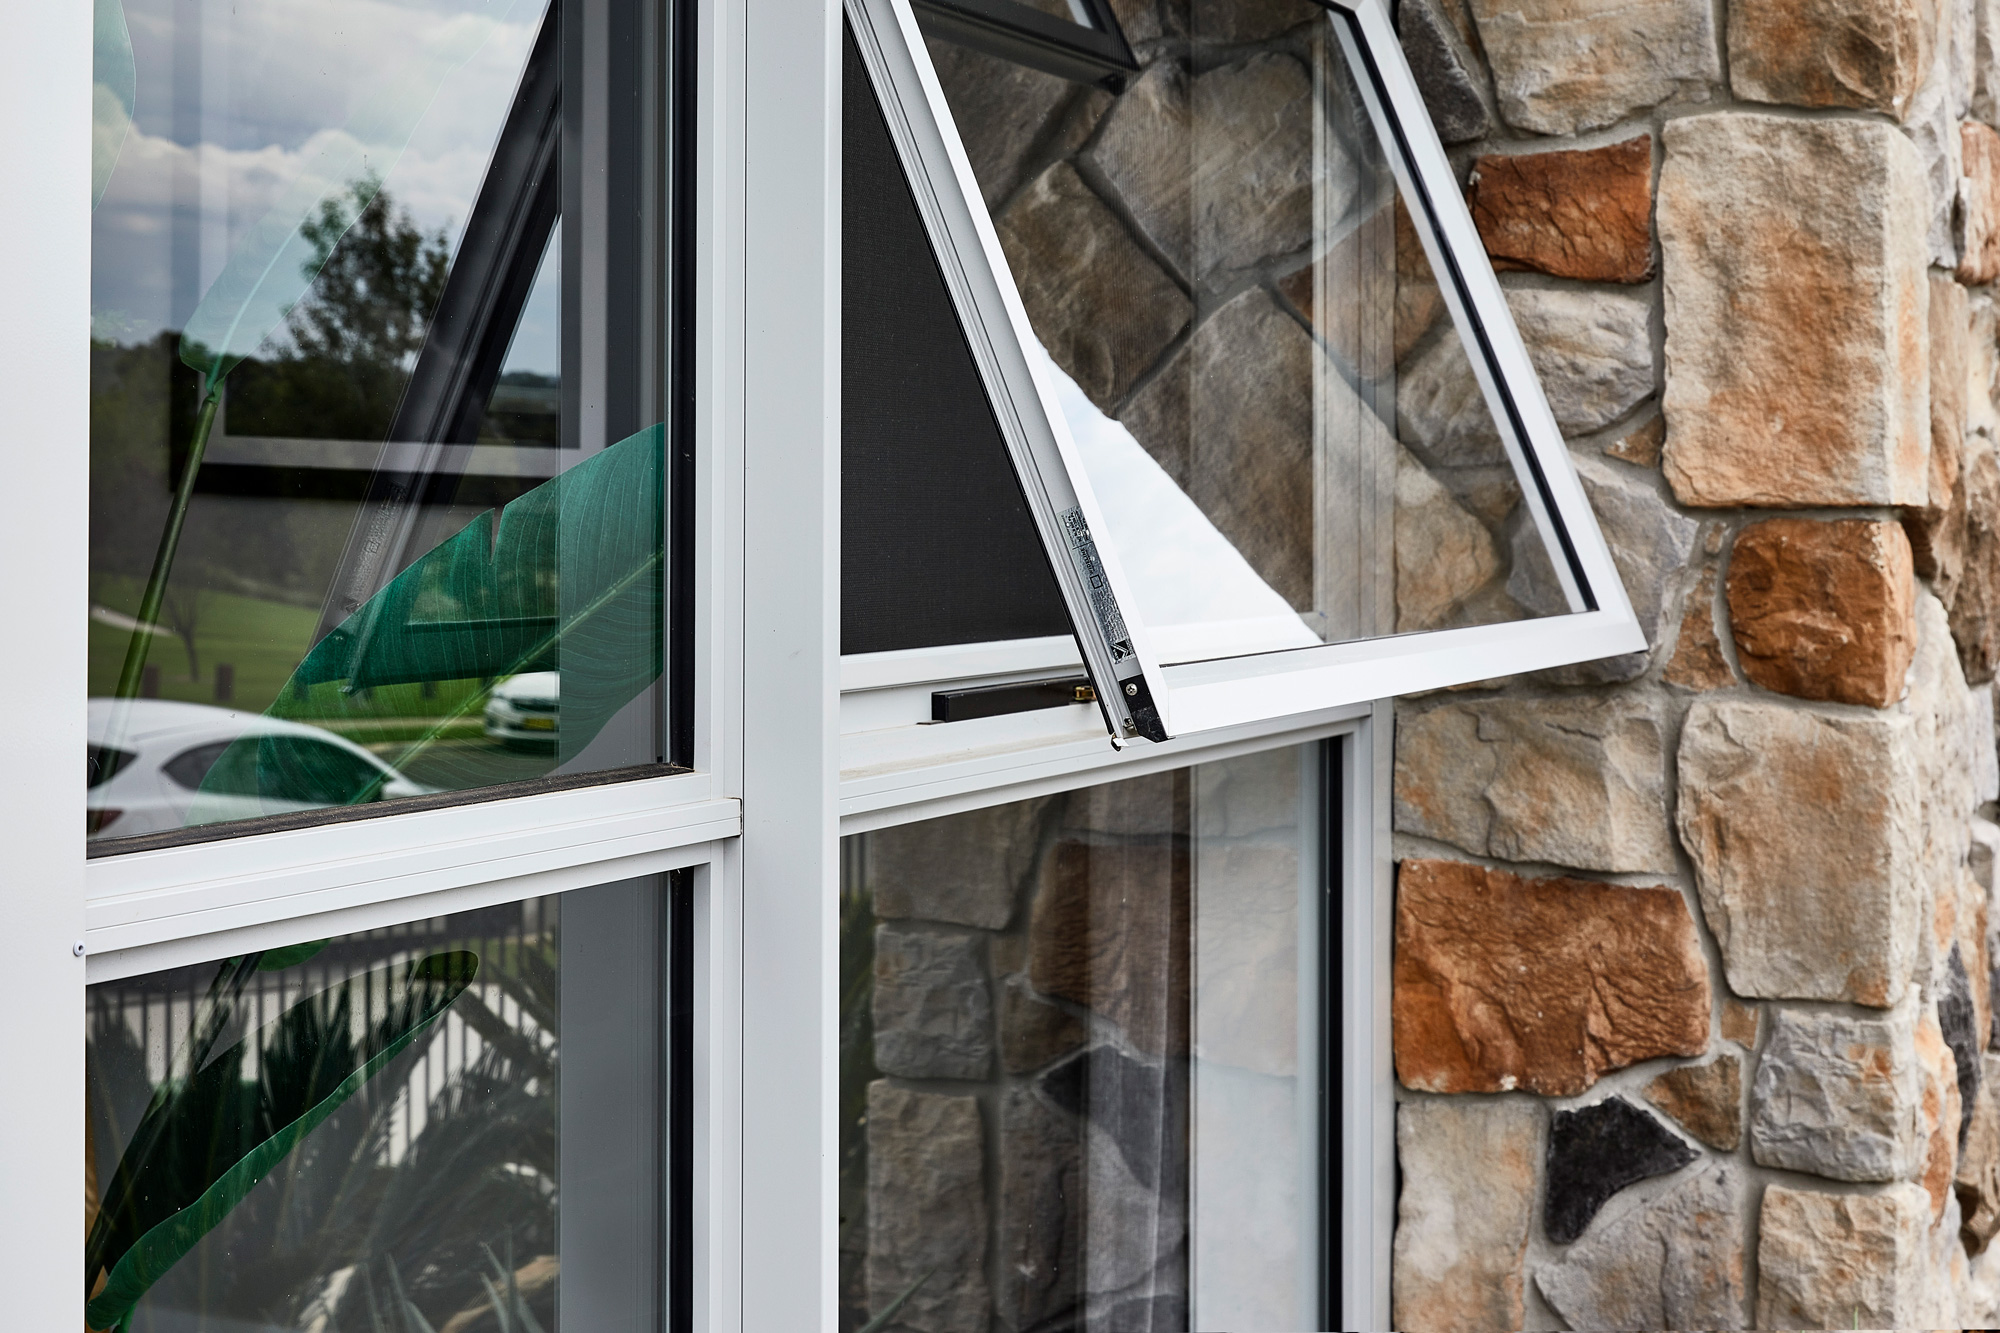 Paragon awning windows in Shale Grey